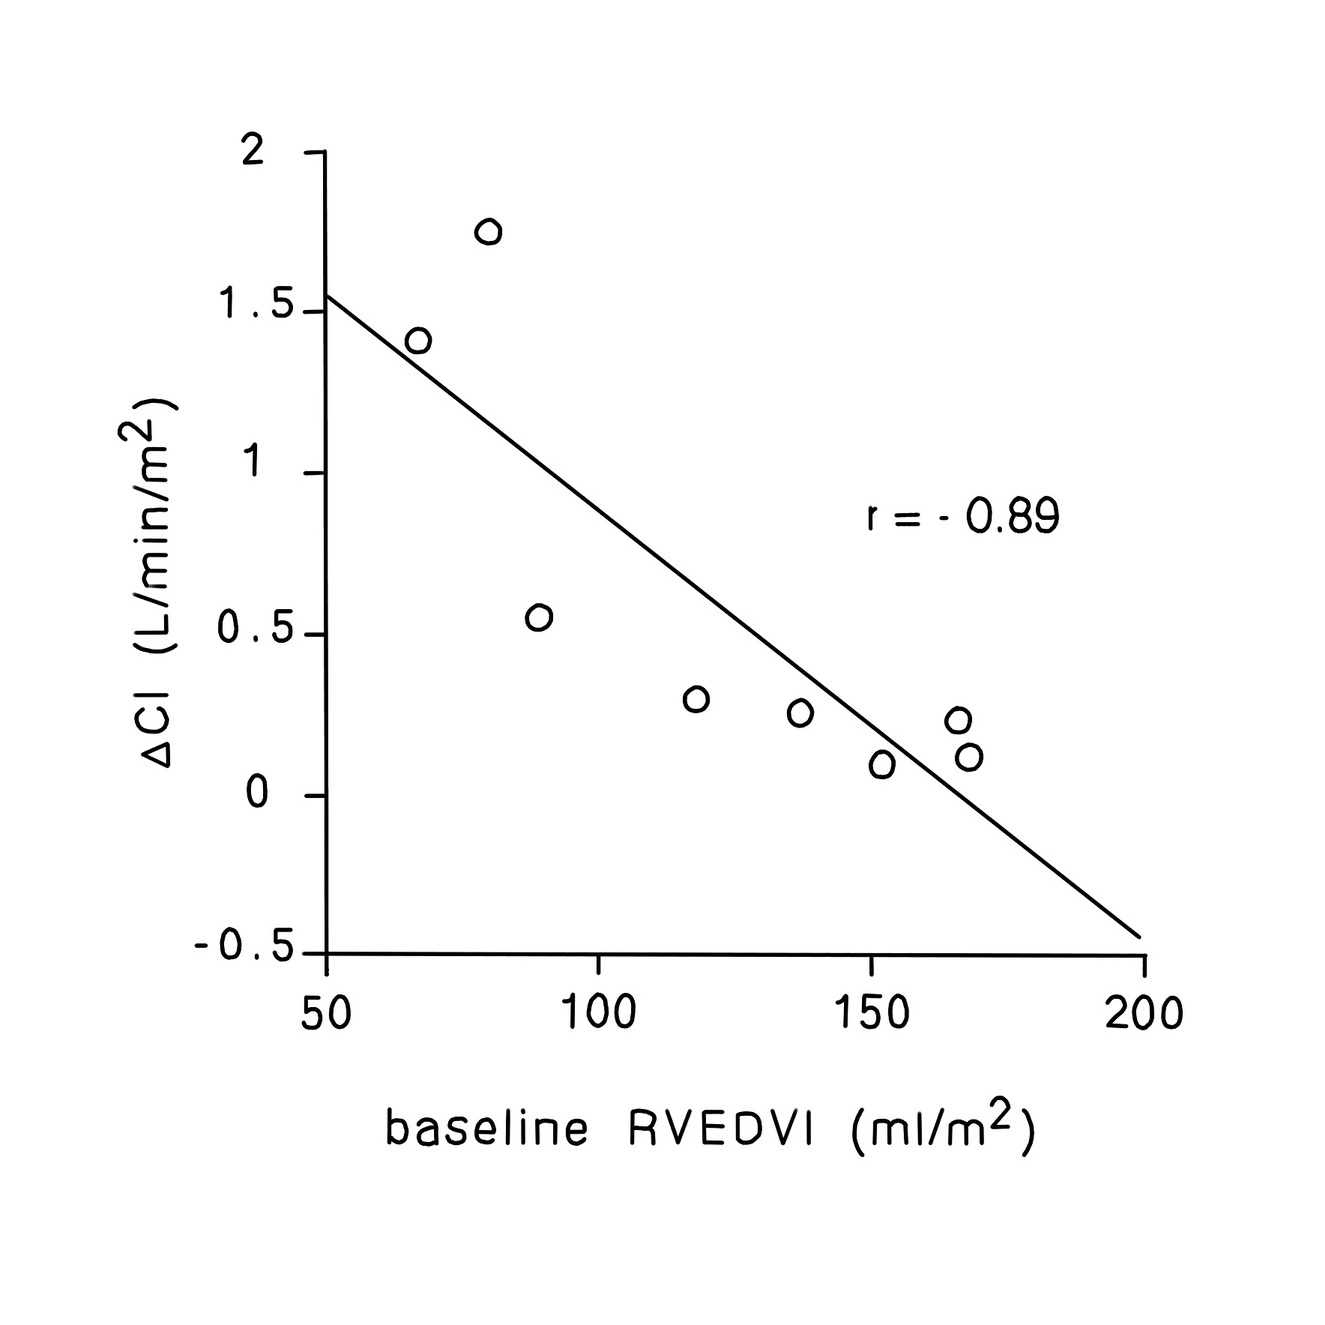 Figure 2: A graph depicting the effect of baseline right ventricular end diastolic volume to change in cardiac index